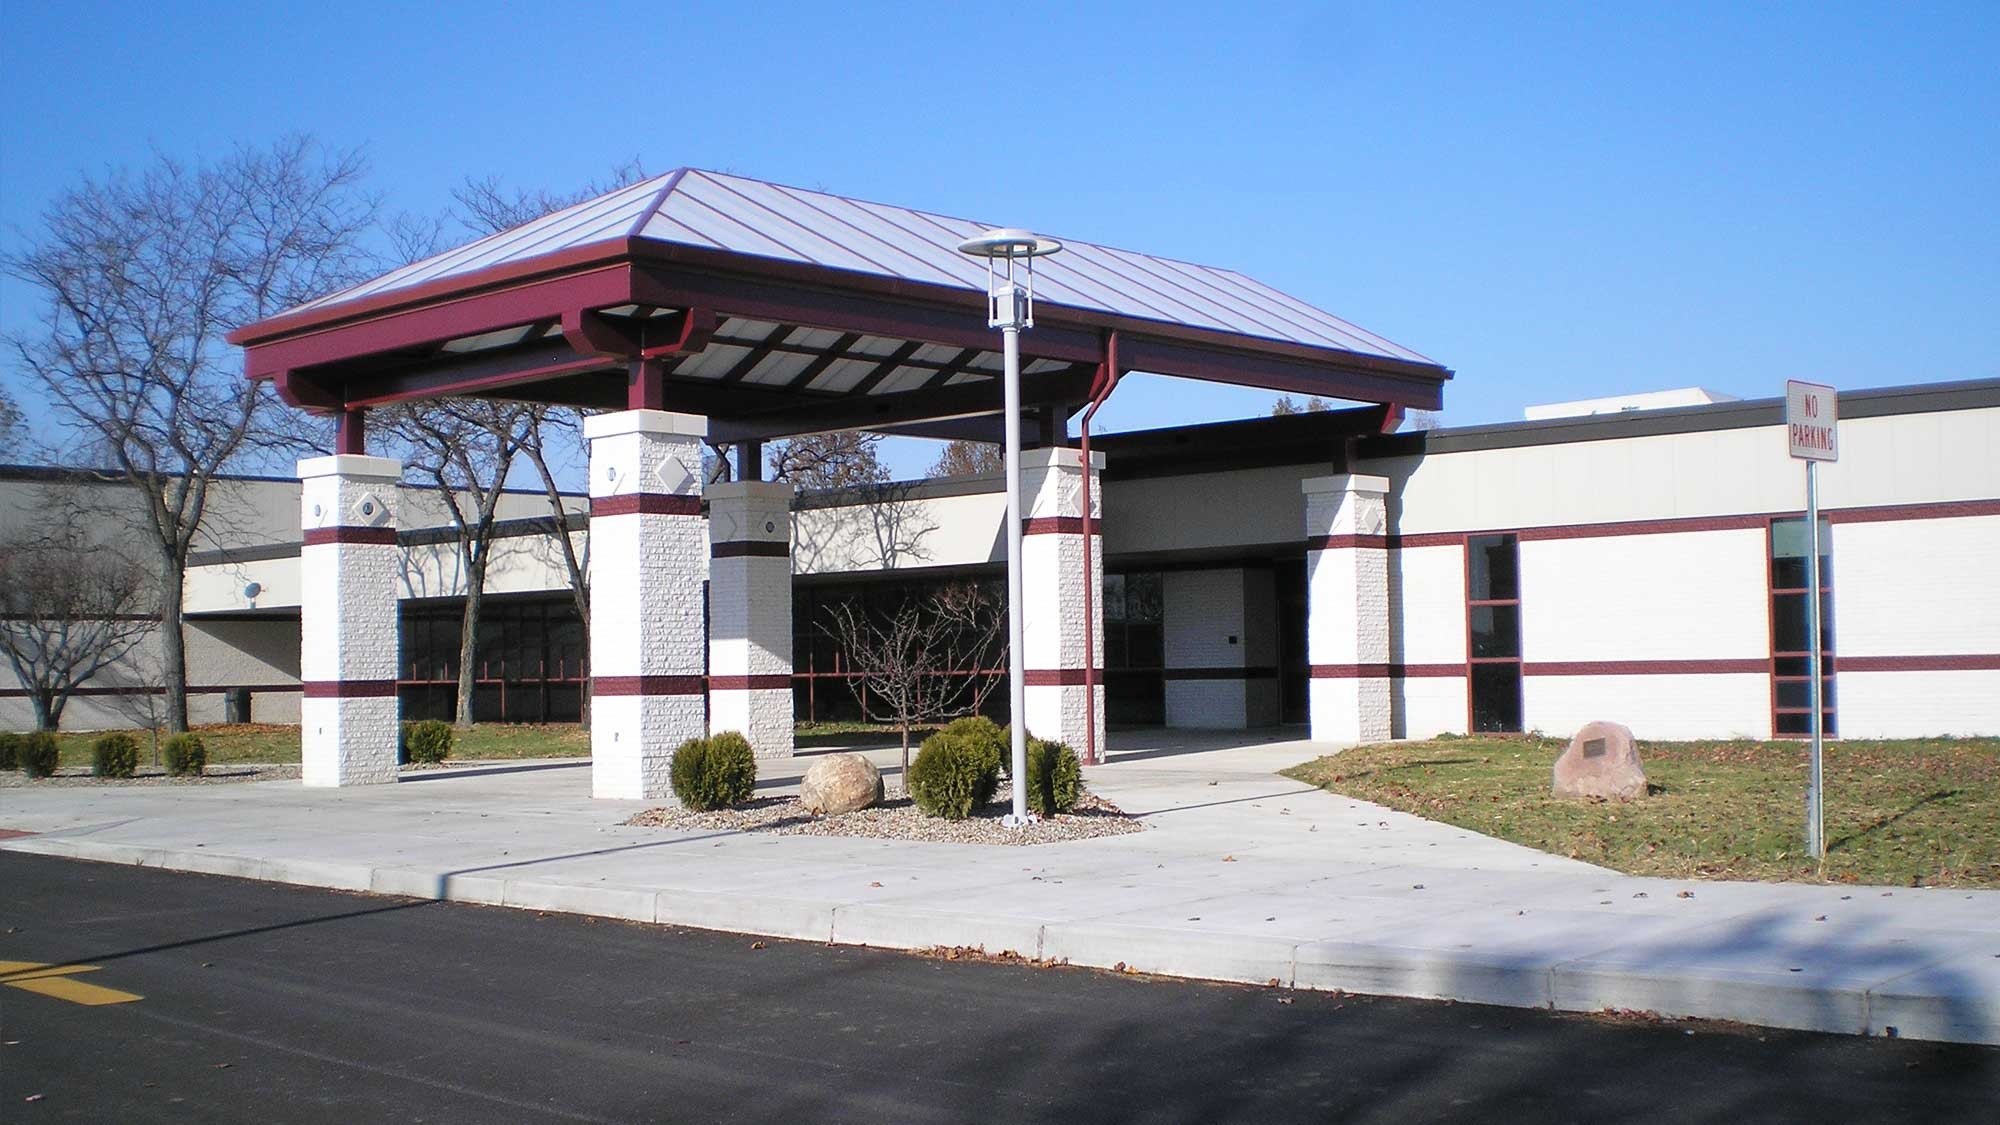 MERCER COUNTY CAREER AND TECHNICAL CENTER